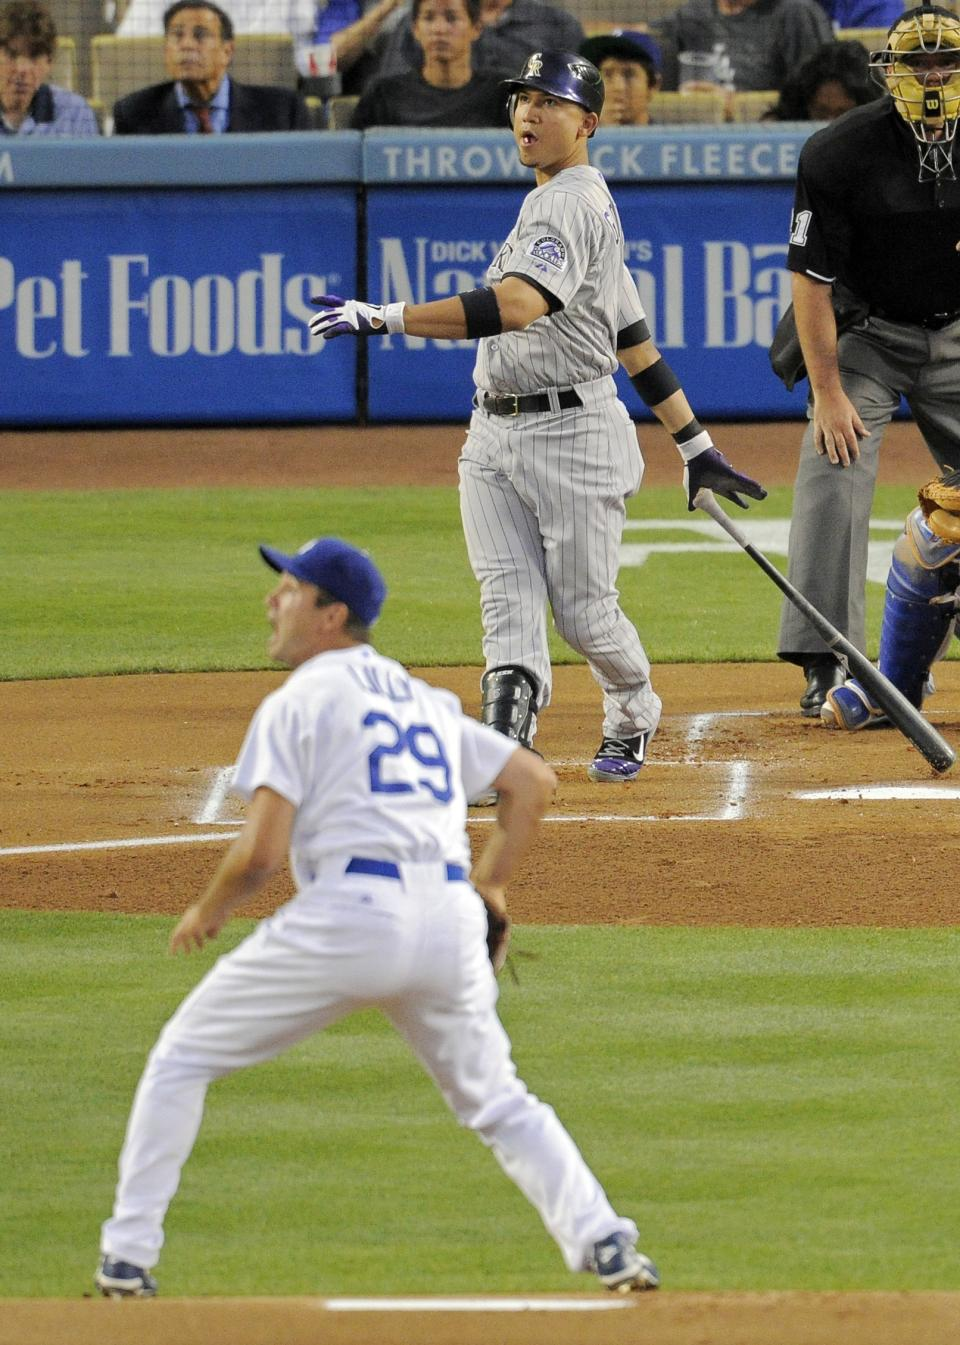 Colorado Rockies left fielder Carlos Gonzalez, top, hits a solo home run as Los Angeles Dodgers starting pitcher Ted Lilly watches it go during the first inning of their baseball game, Friday, Aug. 26, 2011, in Los Angeles. (AP Photo/Mark J. Terrill)